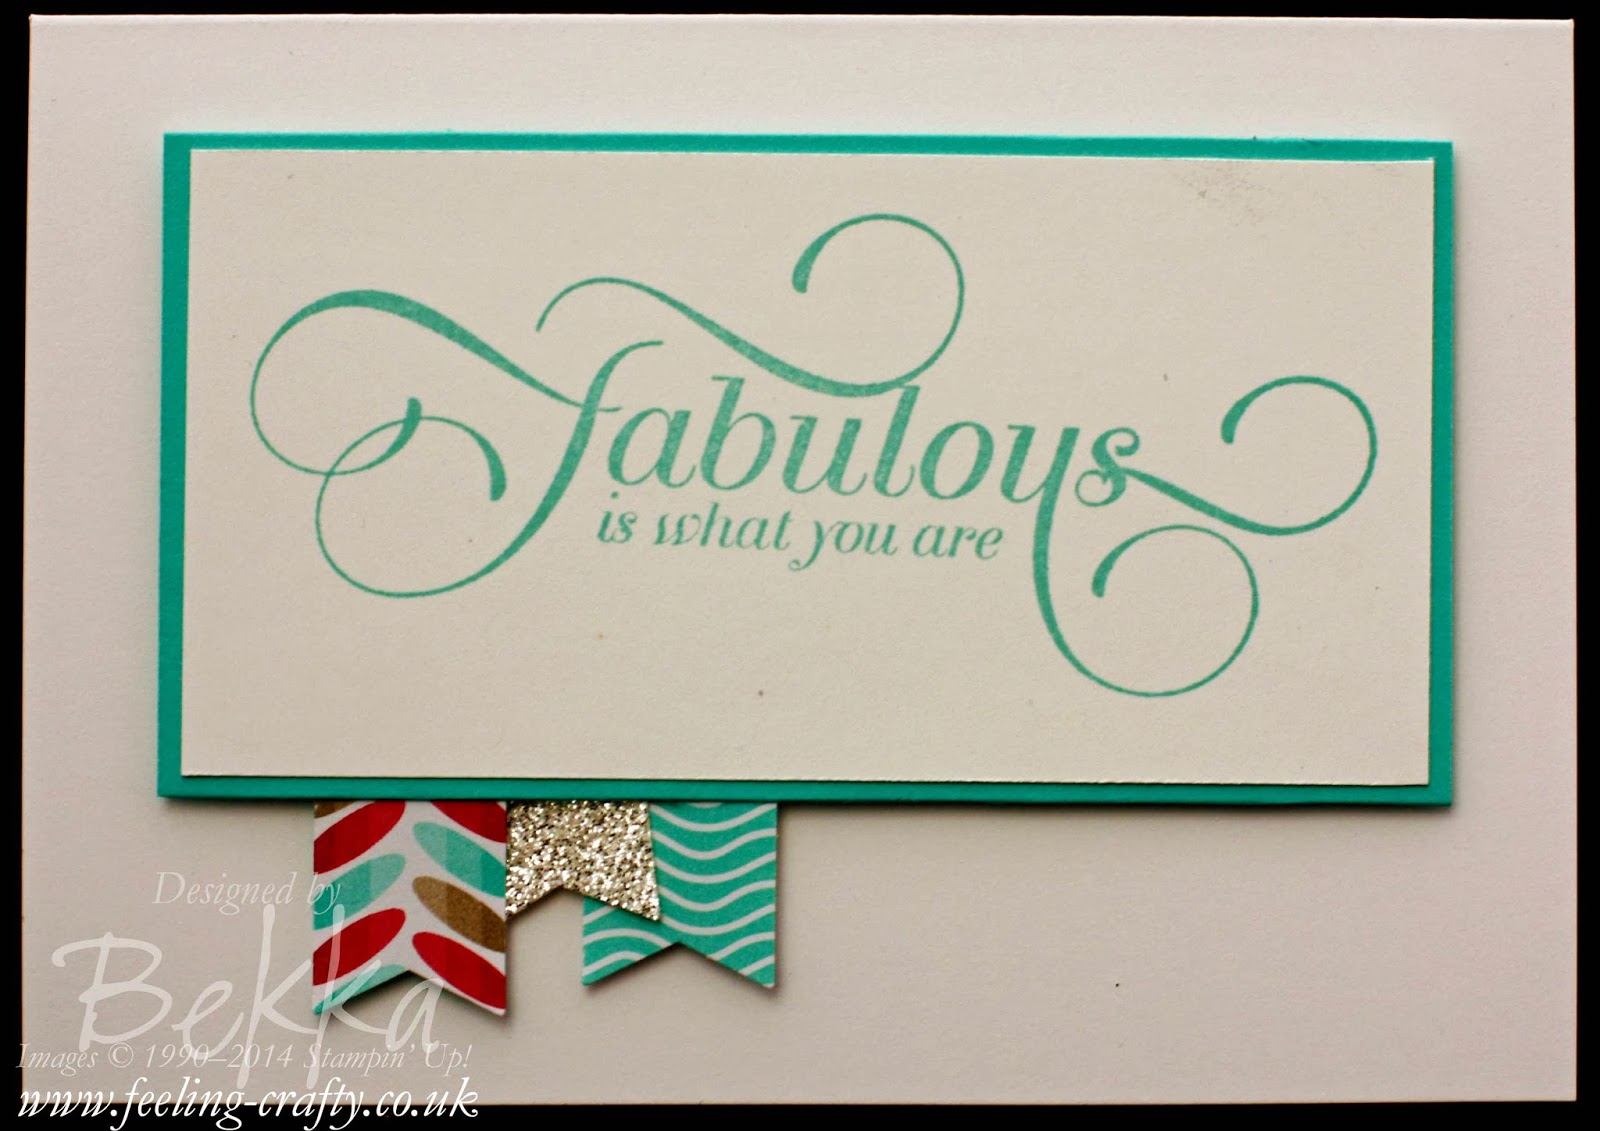 Fabulous is what You Are by UK based Stampin' Up! Demonstrator Bekka Prideaux - buy all your Stampin' Up! Goodies here